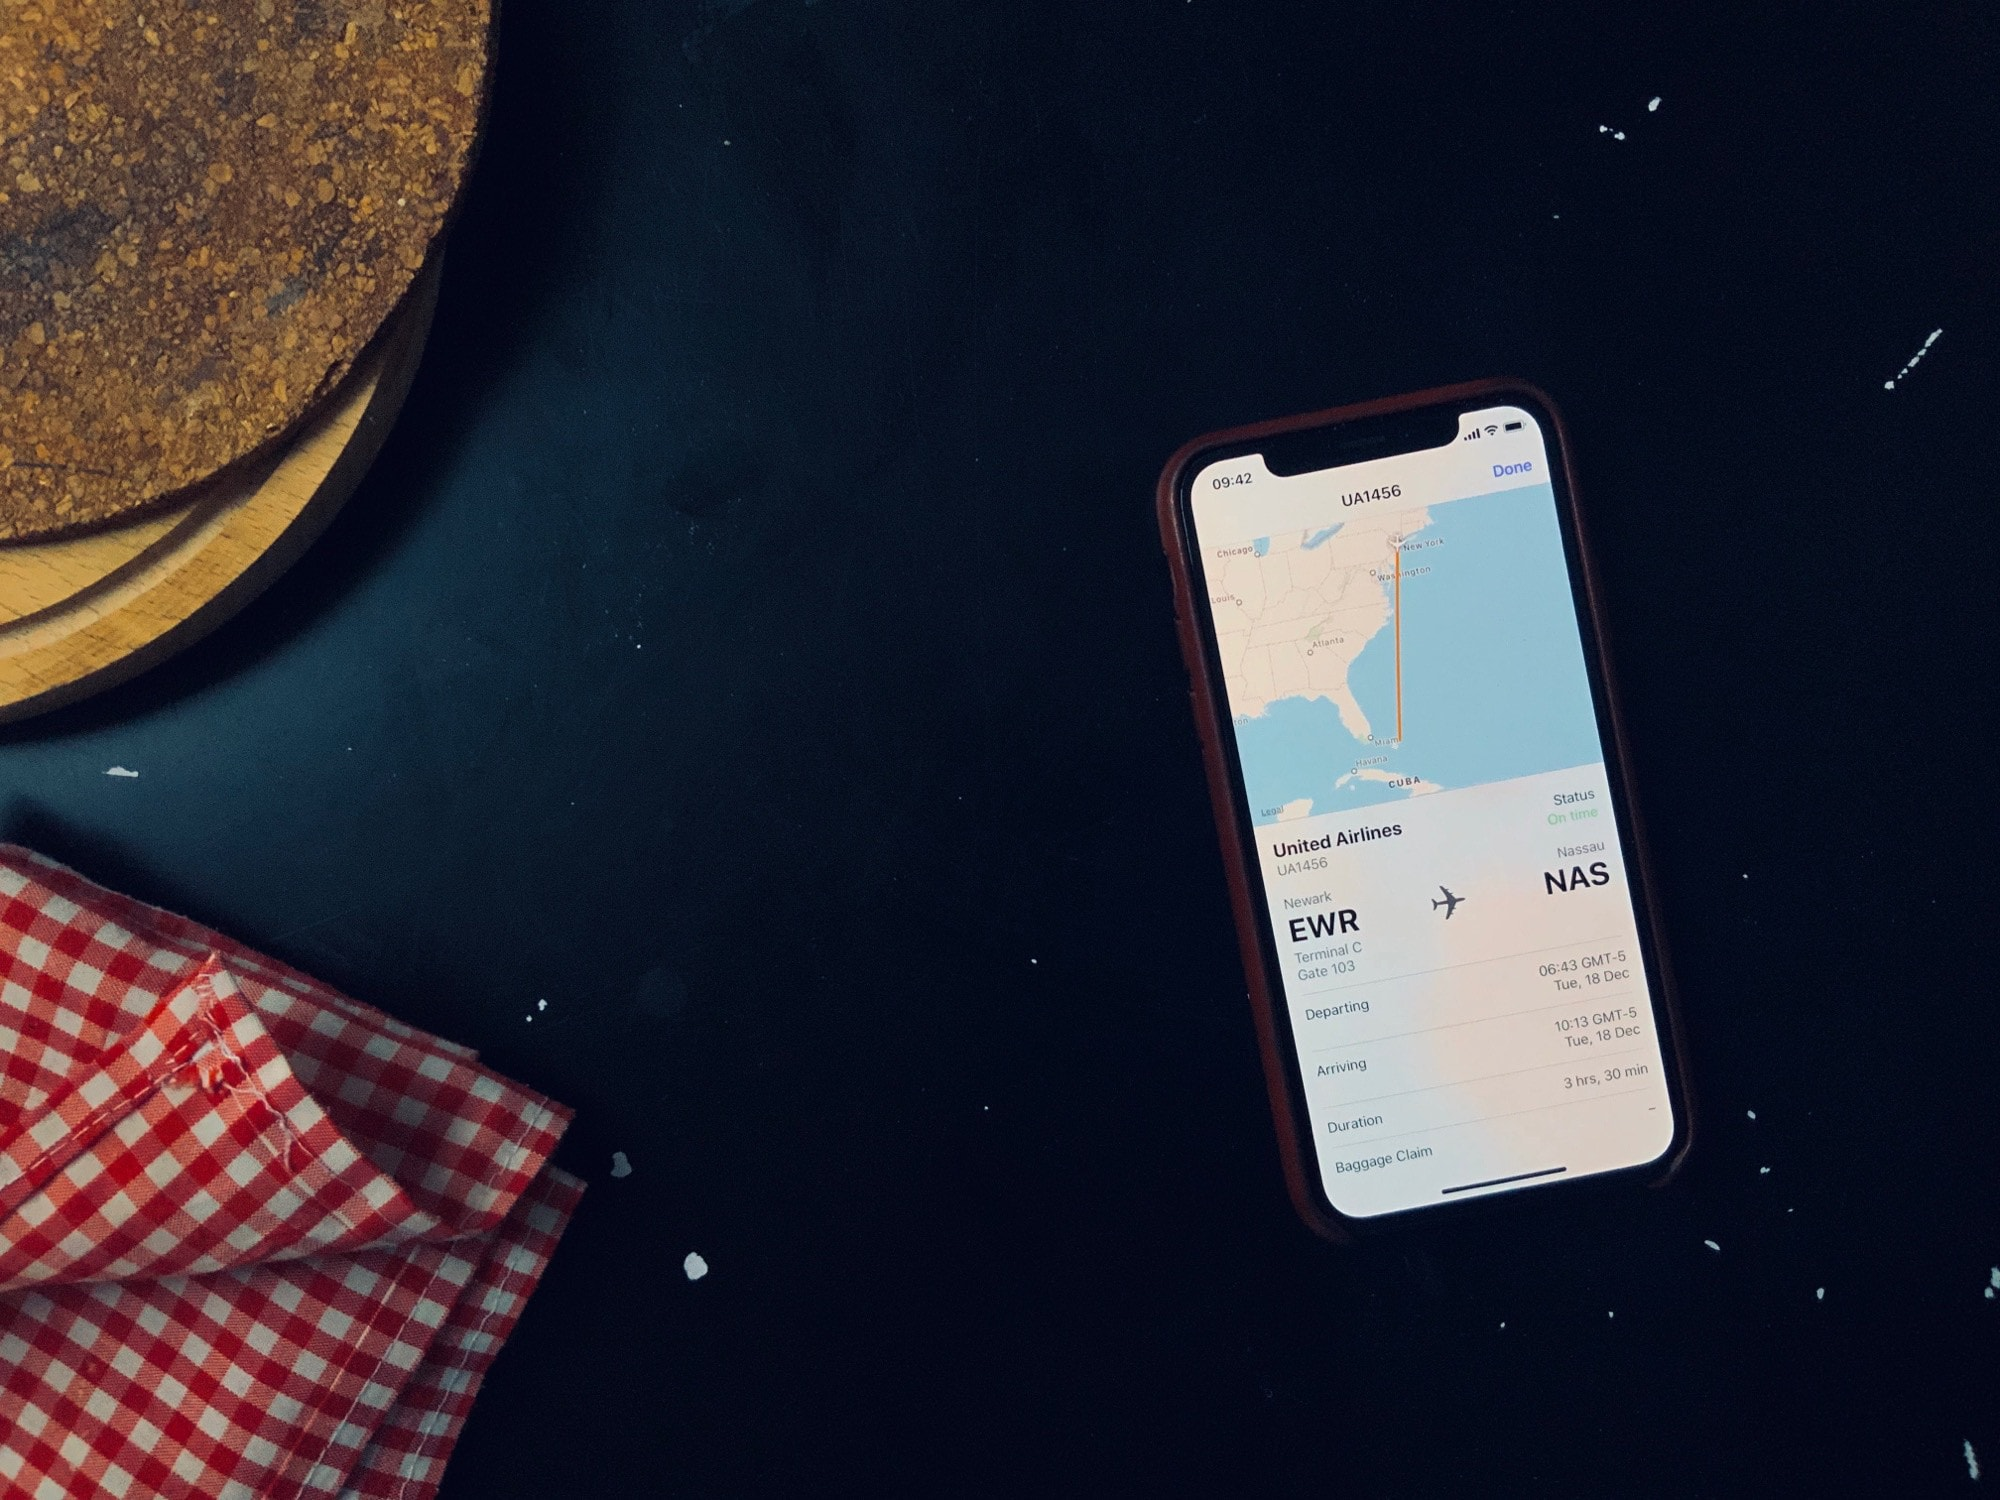 This flight tracker is built into every iPhone and iPad track flights